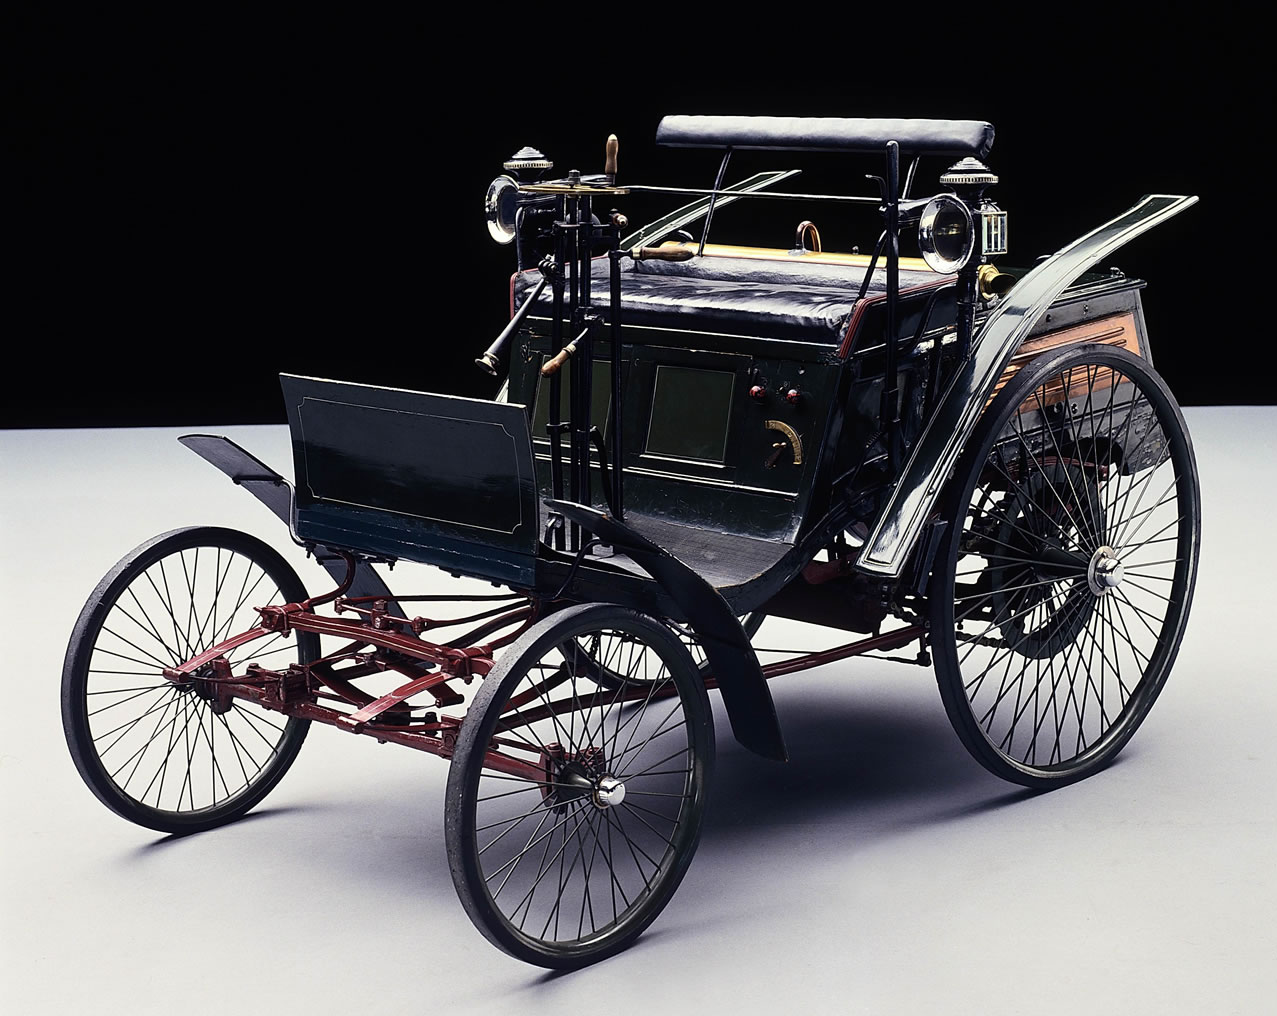 World S First Production Car The Benz Patent Motor Velocipede Of 1894